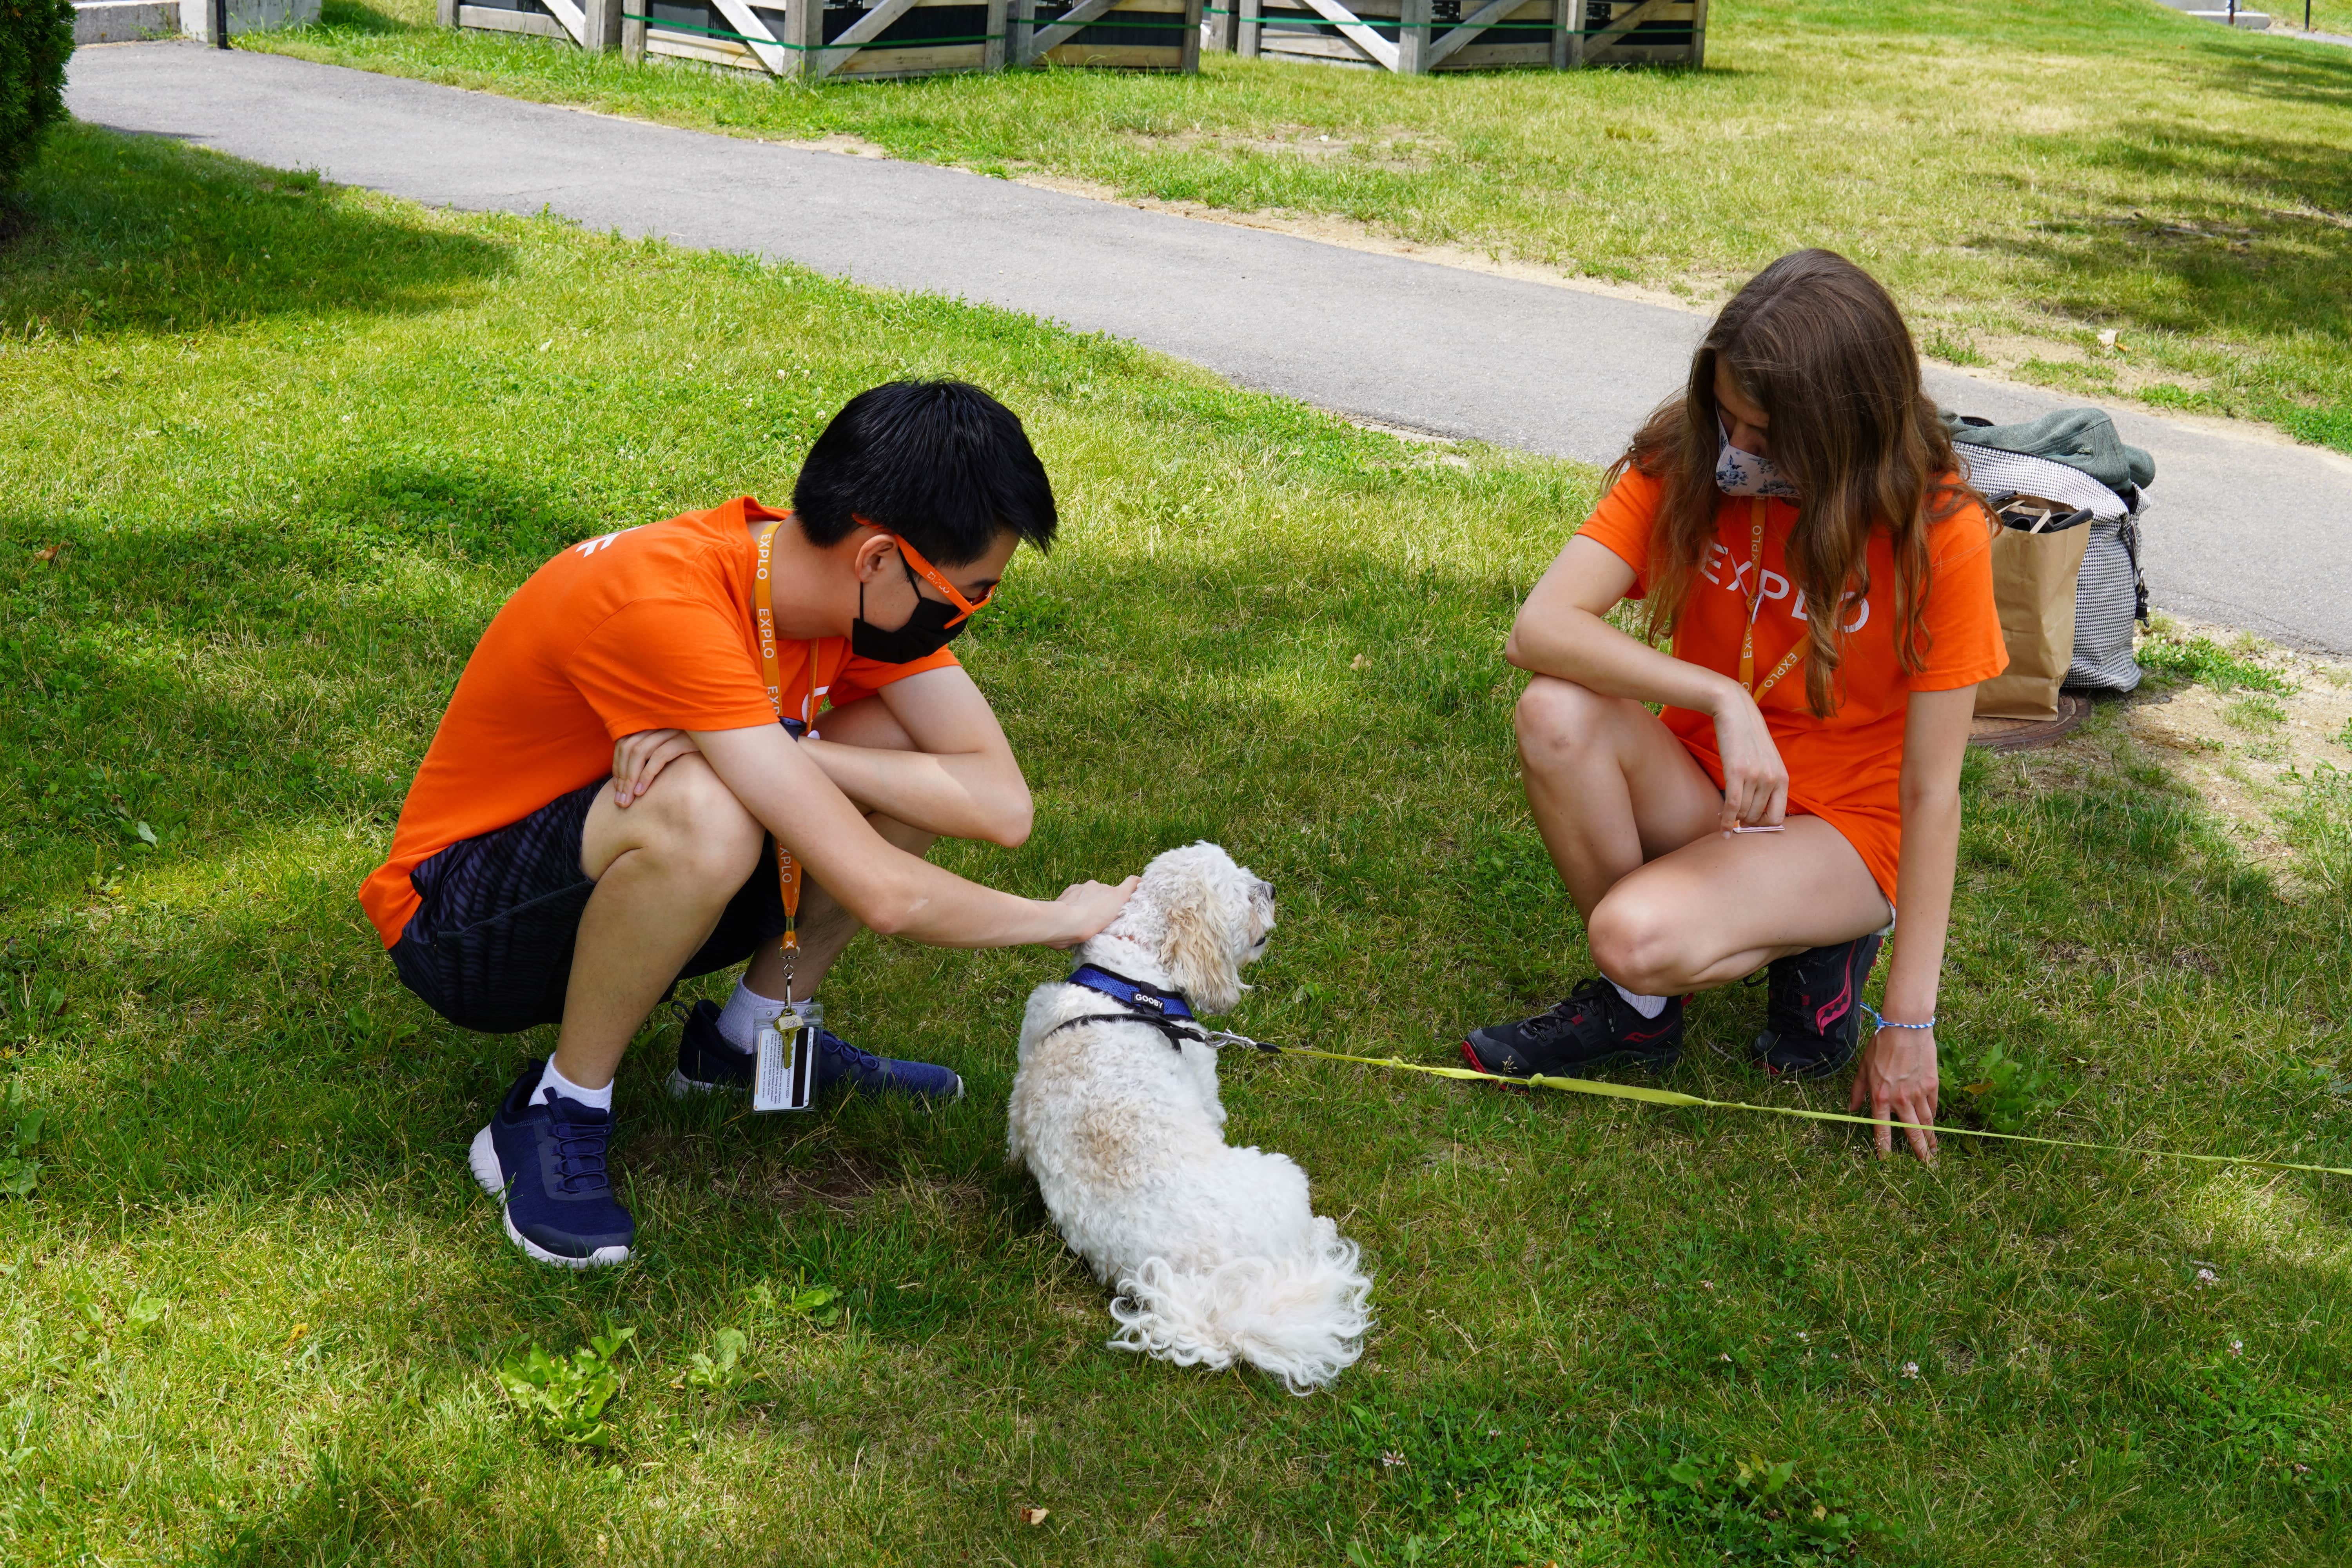 A dog says goodbye to a student, and staff take the opportunity to pet it in the shade.